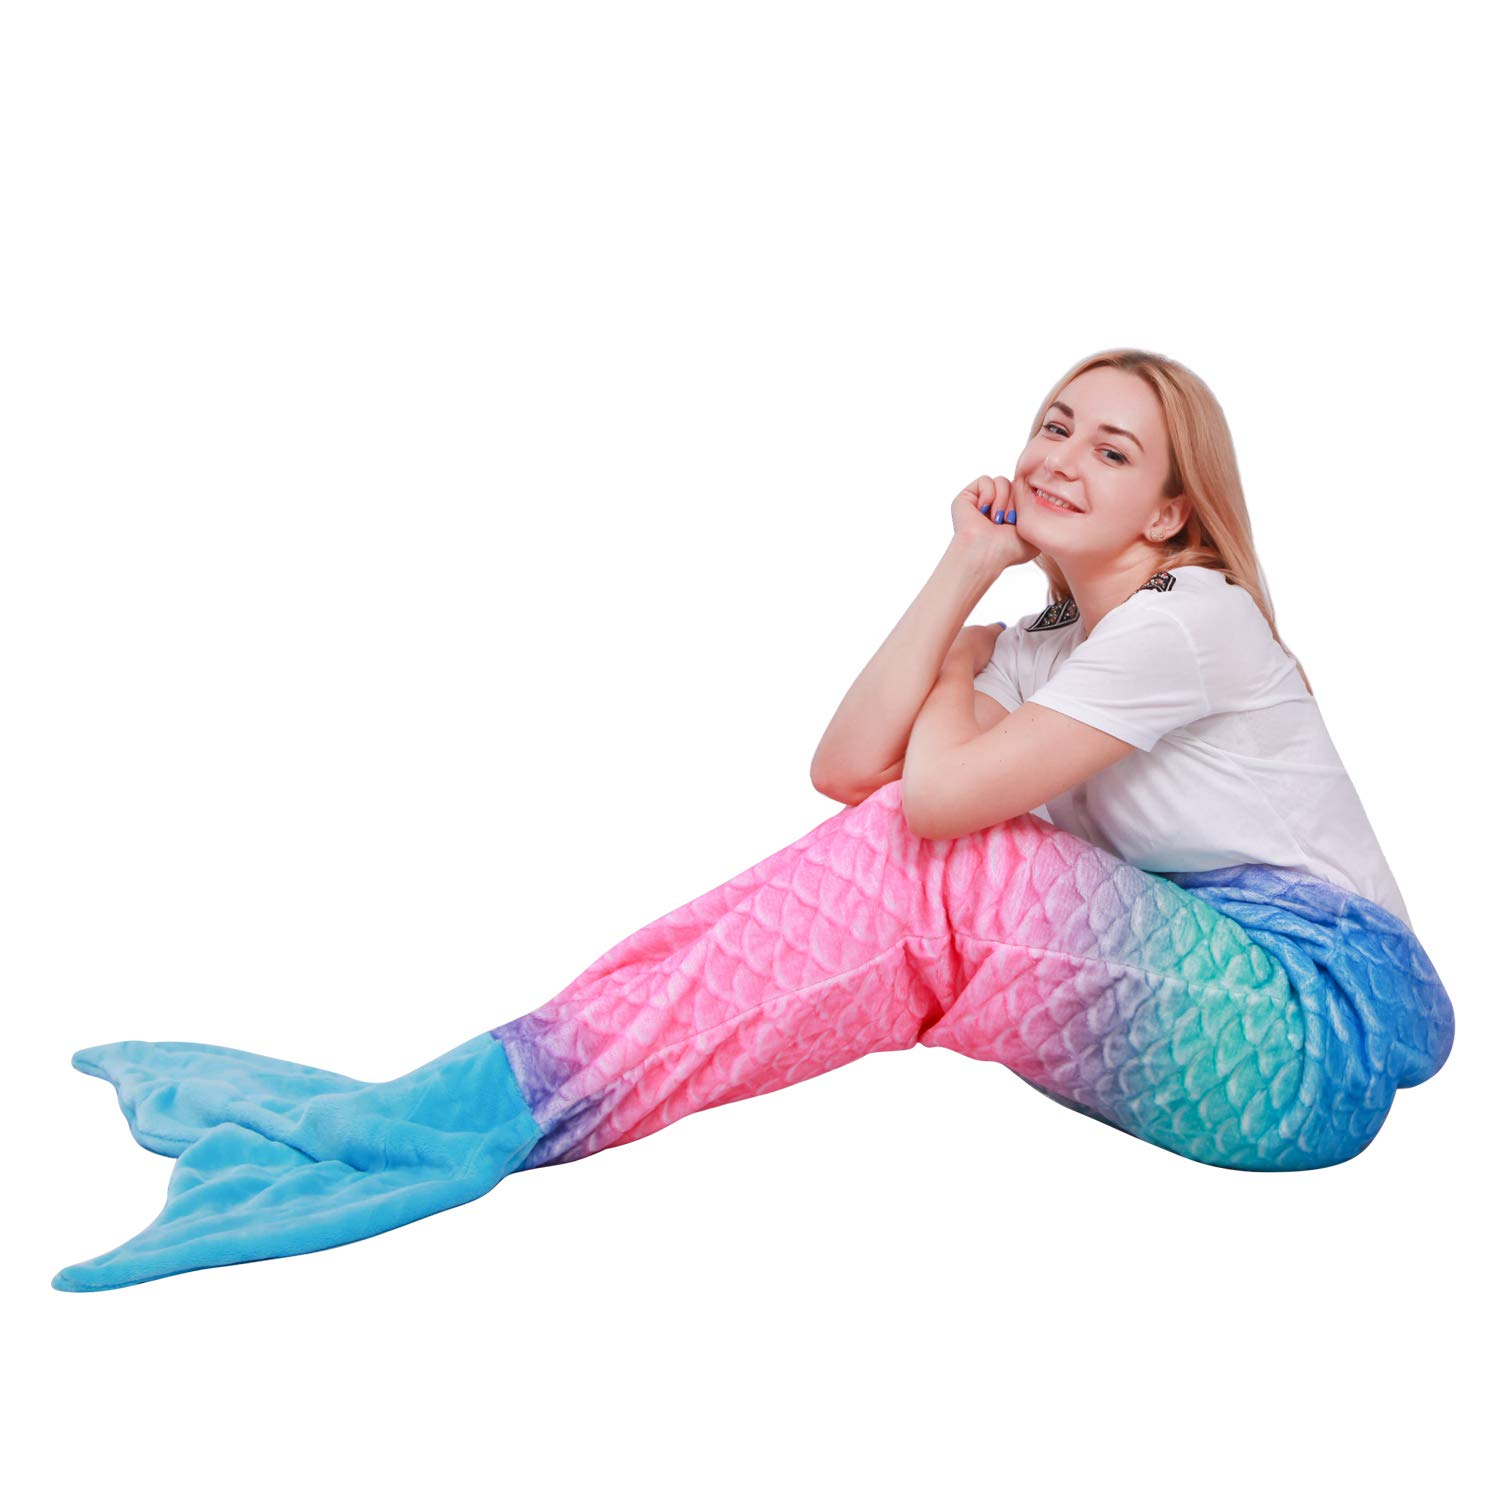 "Ataya Mermaid Tail Blanket for Adults and Kids,Fit Over 10 Years Old,Multicolor Soft Flannel Fleece All Seasons Sleeping Blanket,Best Gifts for Girls,25""×60""(Ombre Brush Print Body+Blue Tail)"